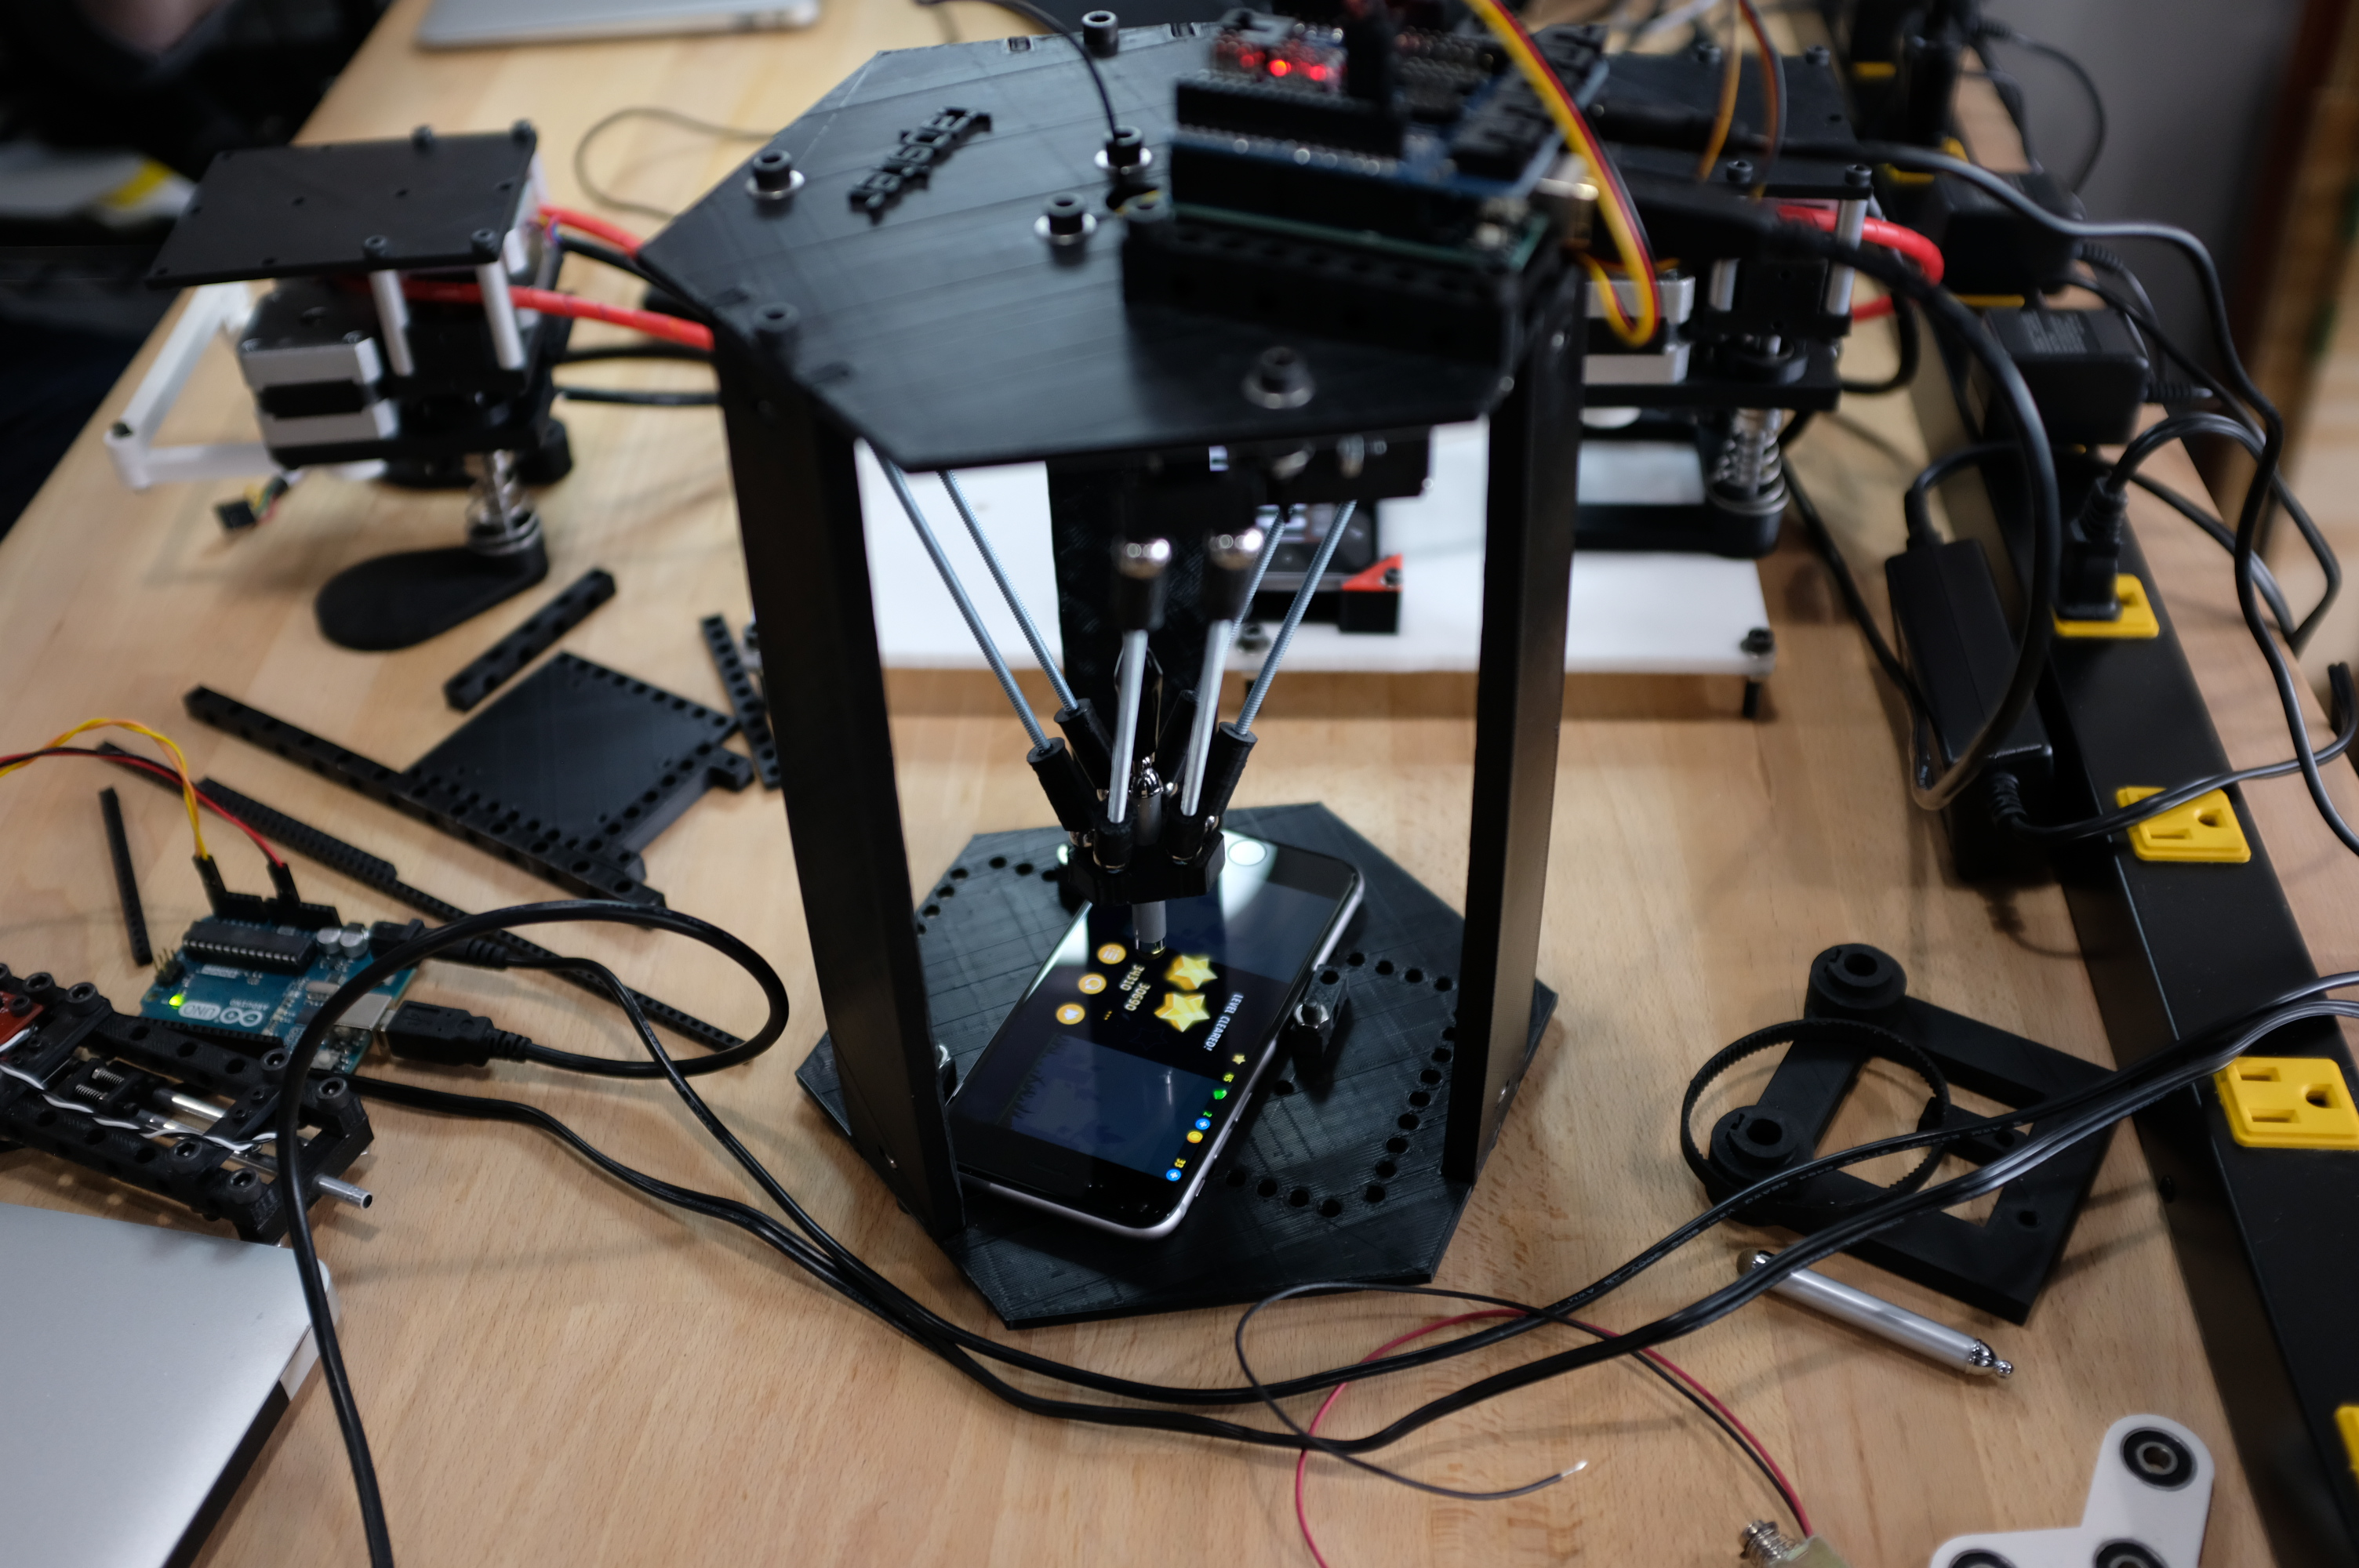 Tapster's robots are built to poke touchscreens